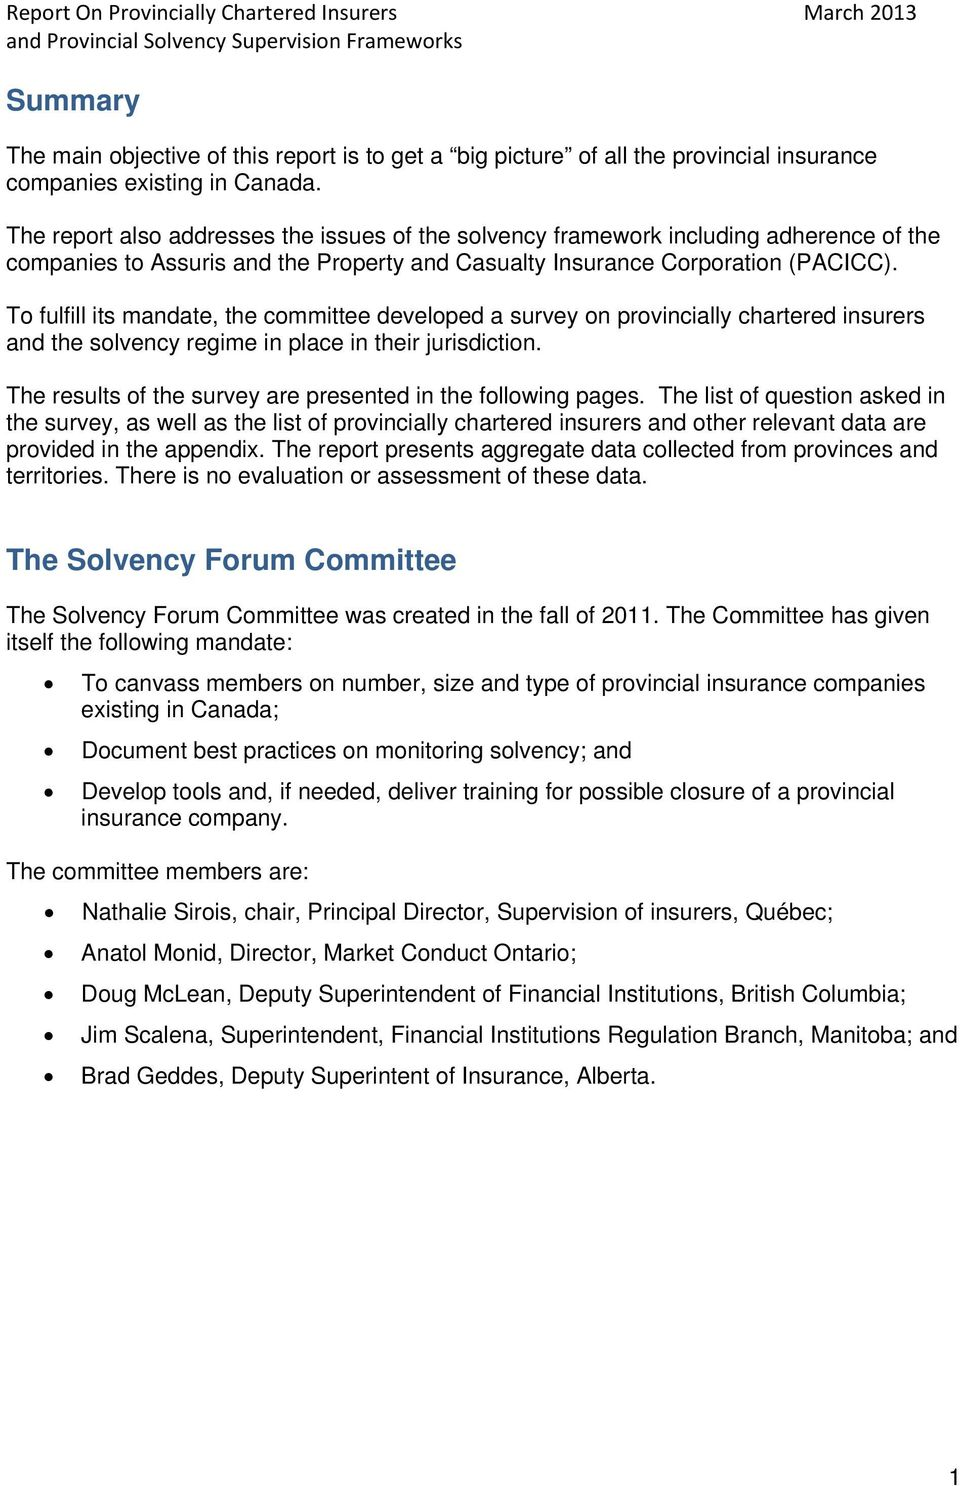 To fulfill its mandate, the committee developed a survey on provincially chartered insurers and the solvency regime in place in their jurisdiction.